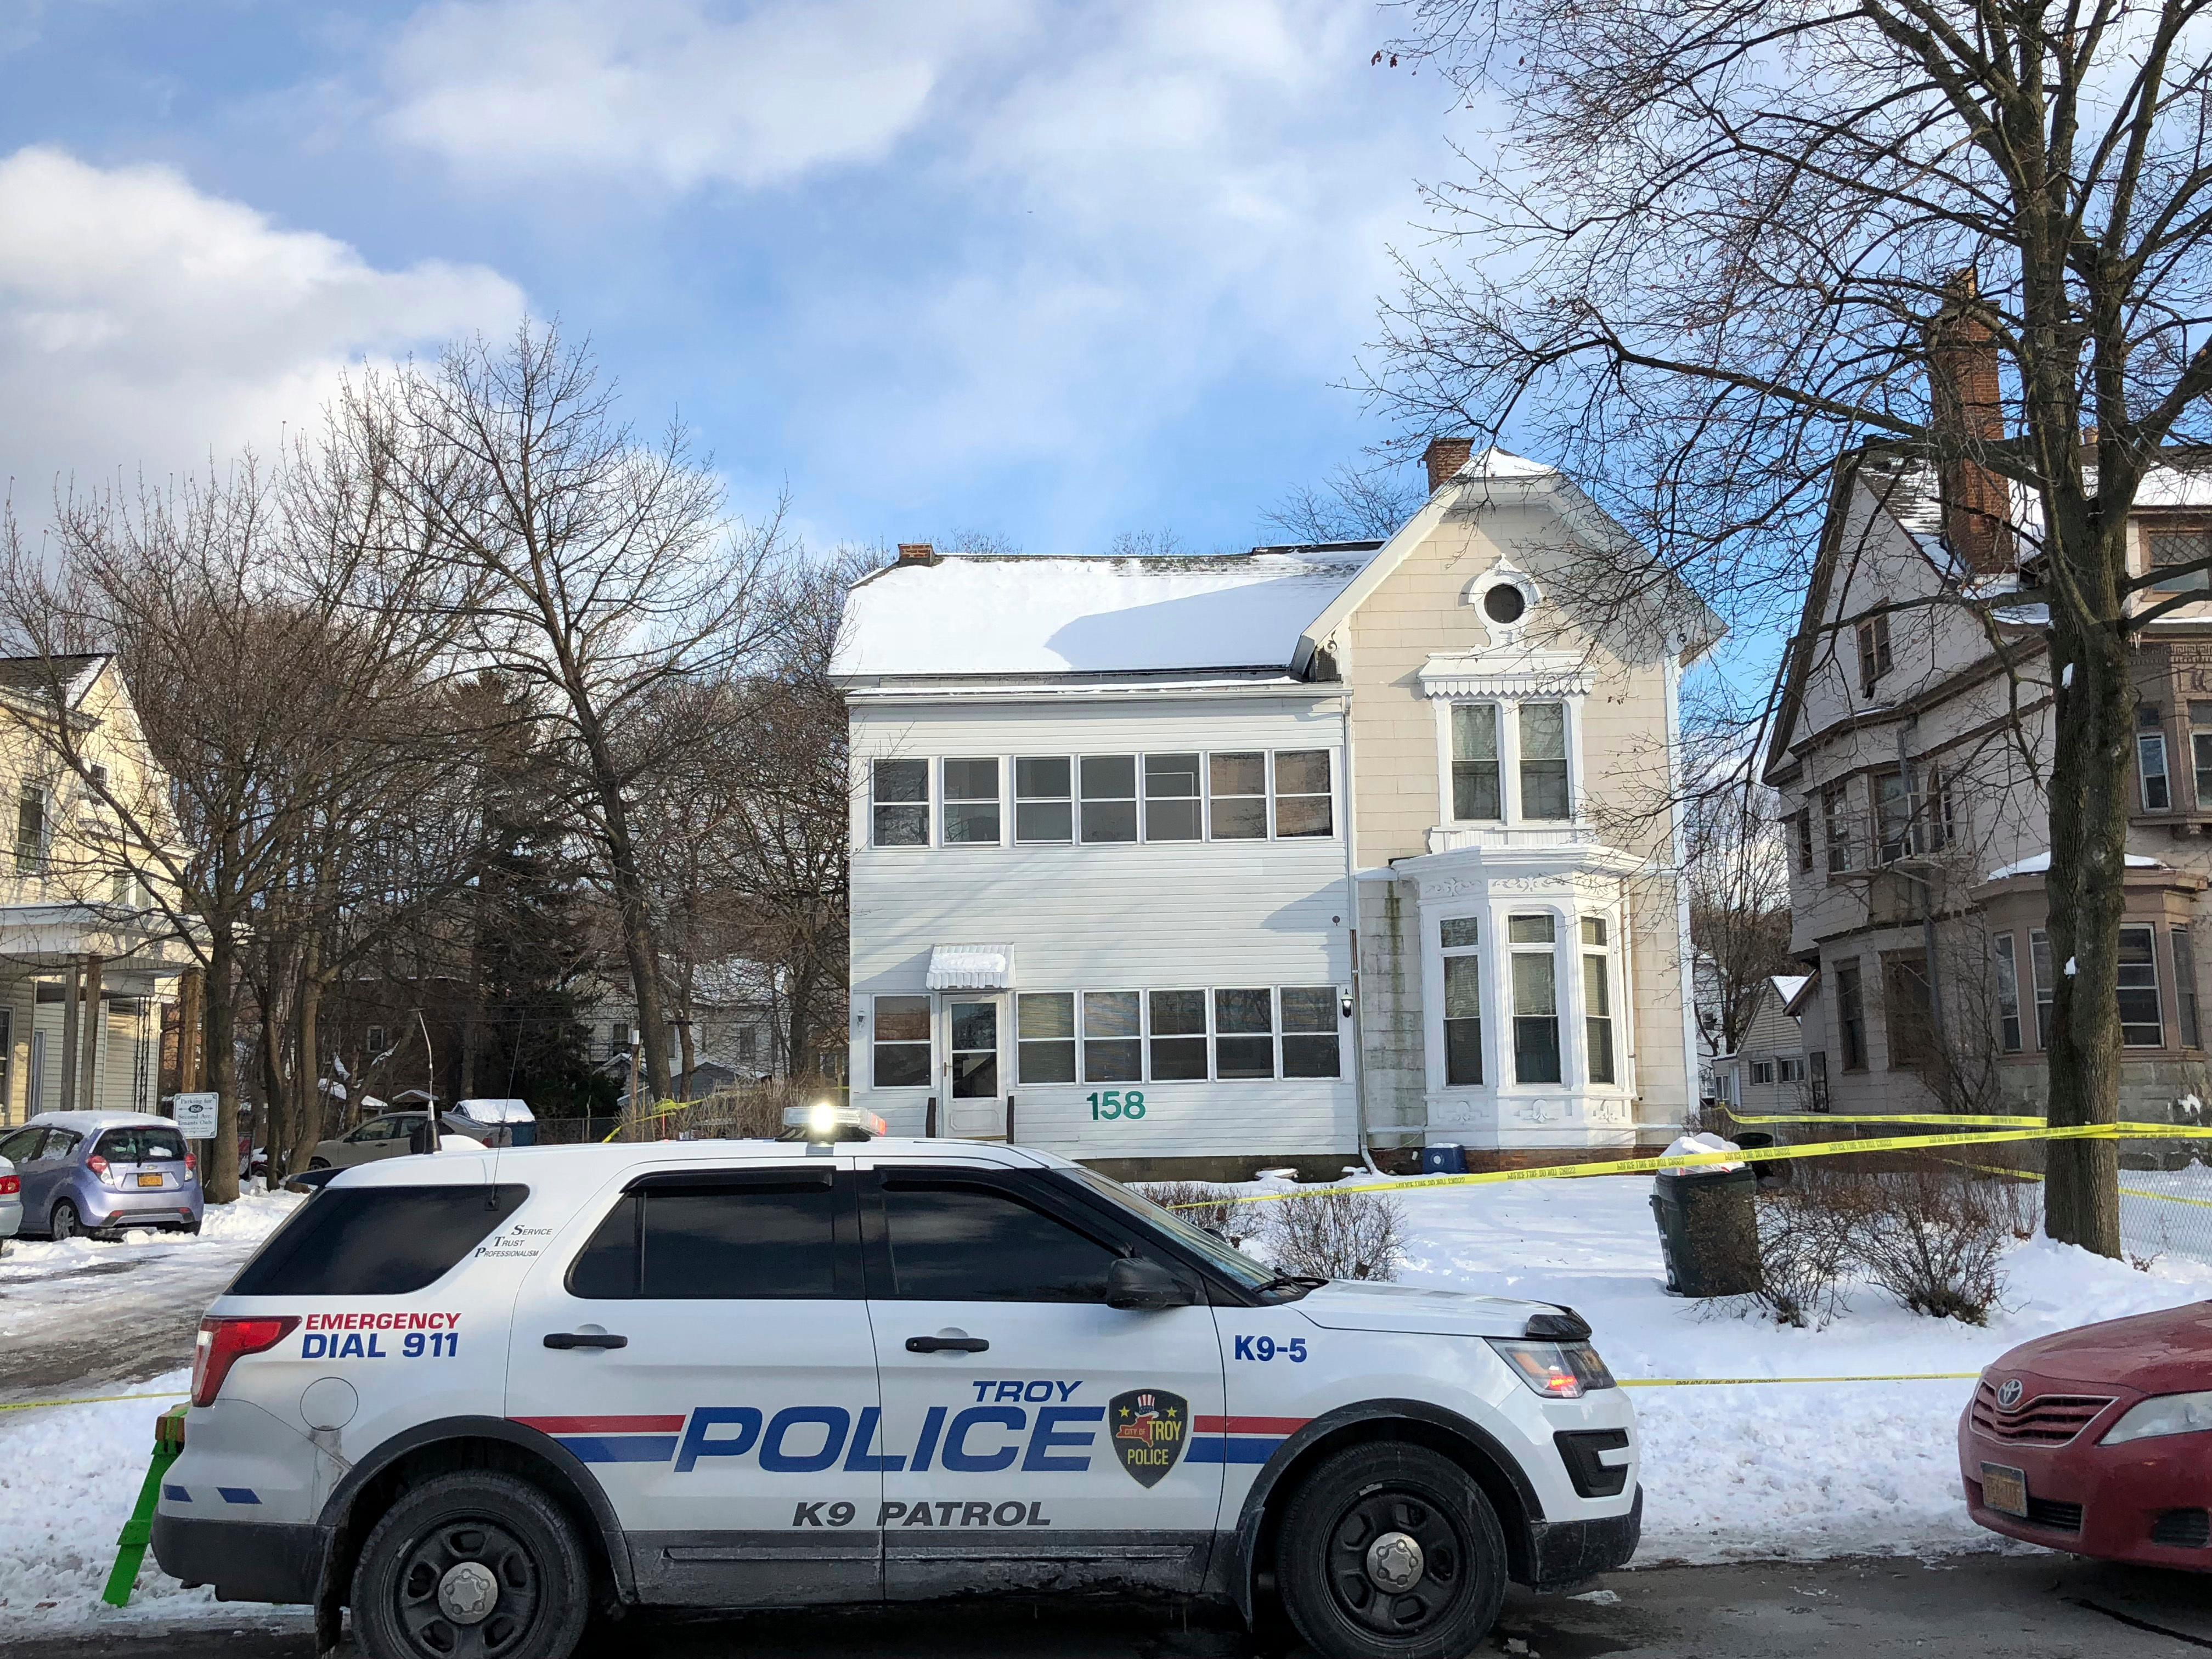 Police secure the perimeter of a home in Troy, N.Y., Tuesday, Dec. 26, 2017, after four bodies were discovered in a basement apartment. Troy police say the deaths are being treated as suspicious. (Nicholas Buonanno/The Record via AP)